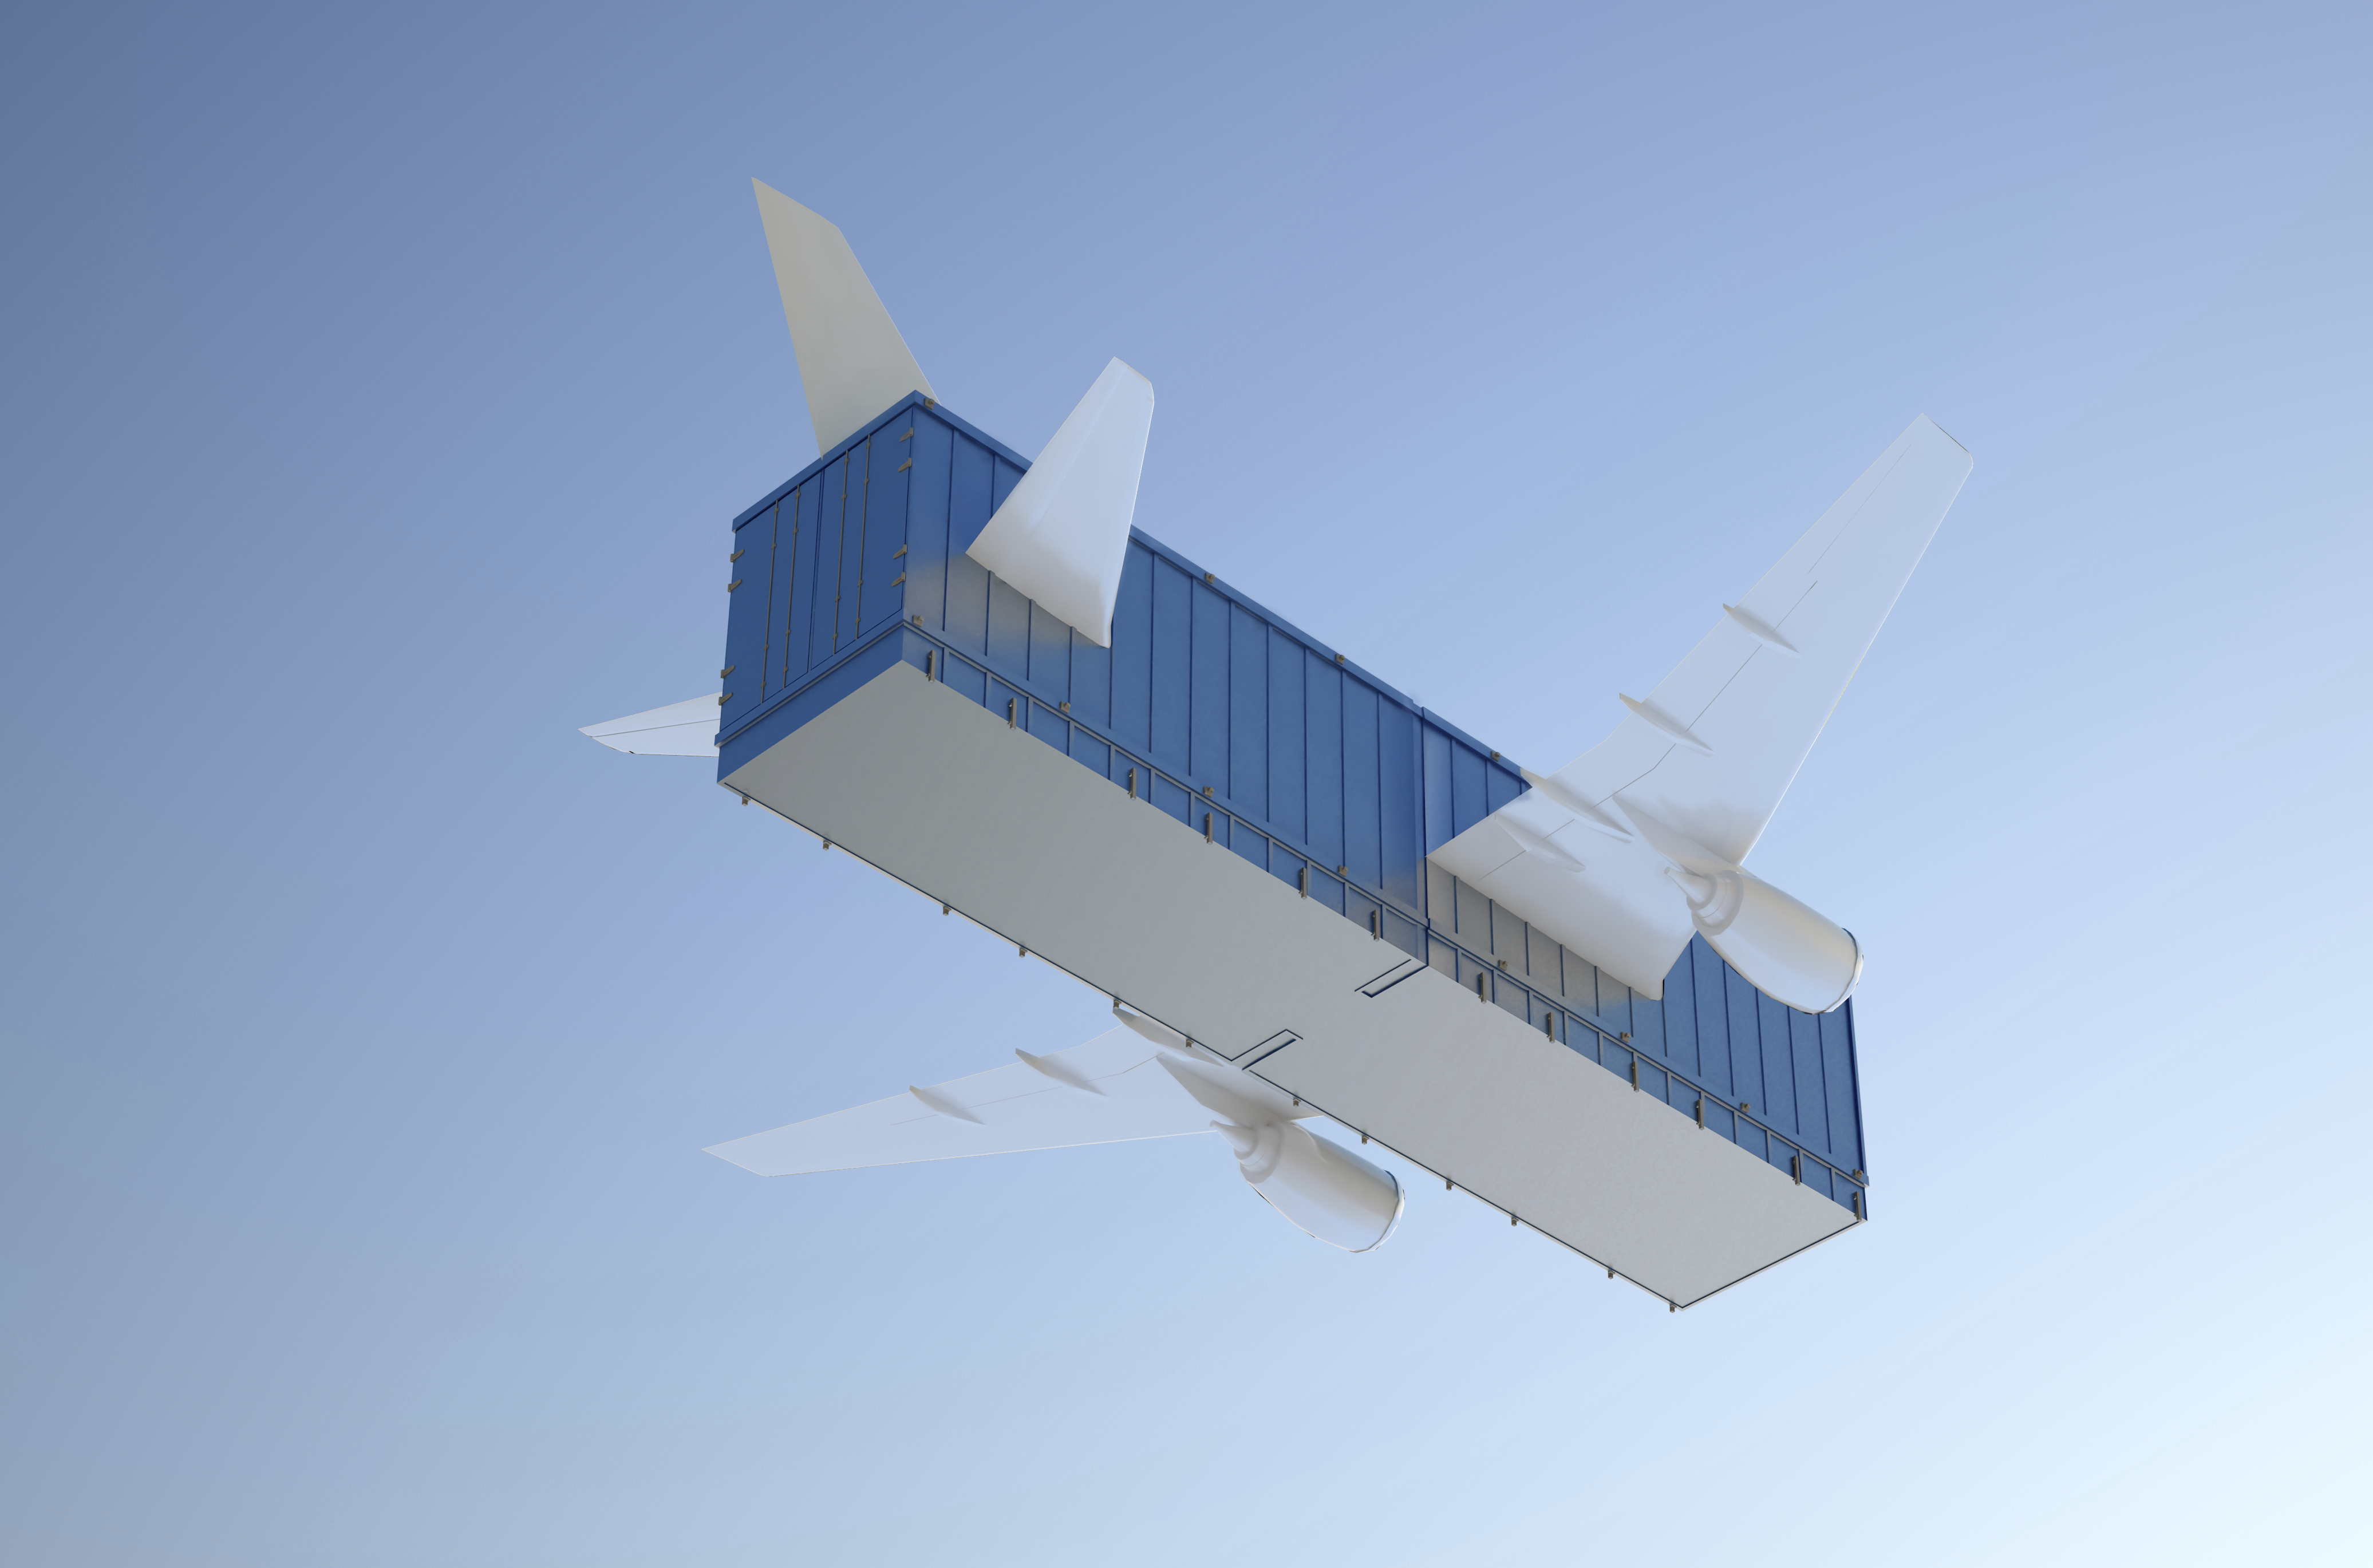 Just Logistics provides valued service in Thailand and overseas.